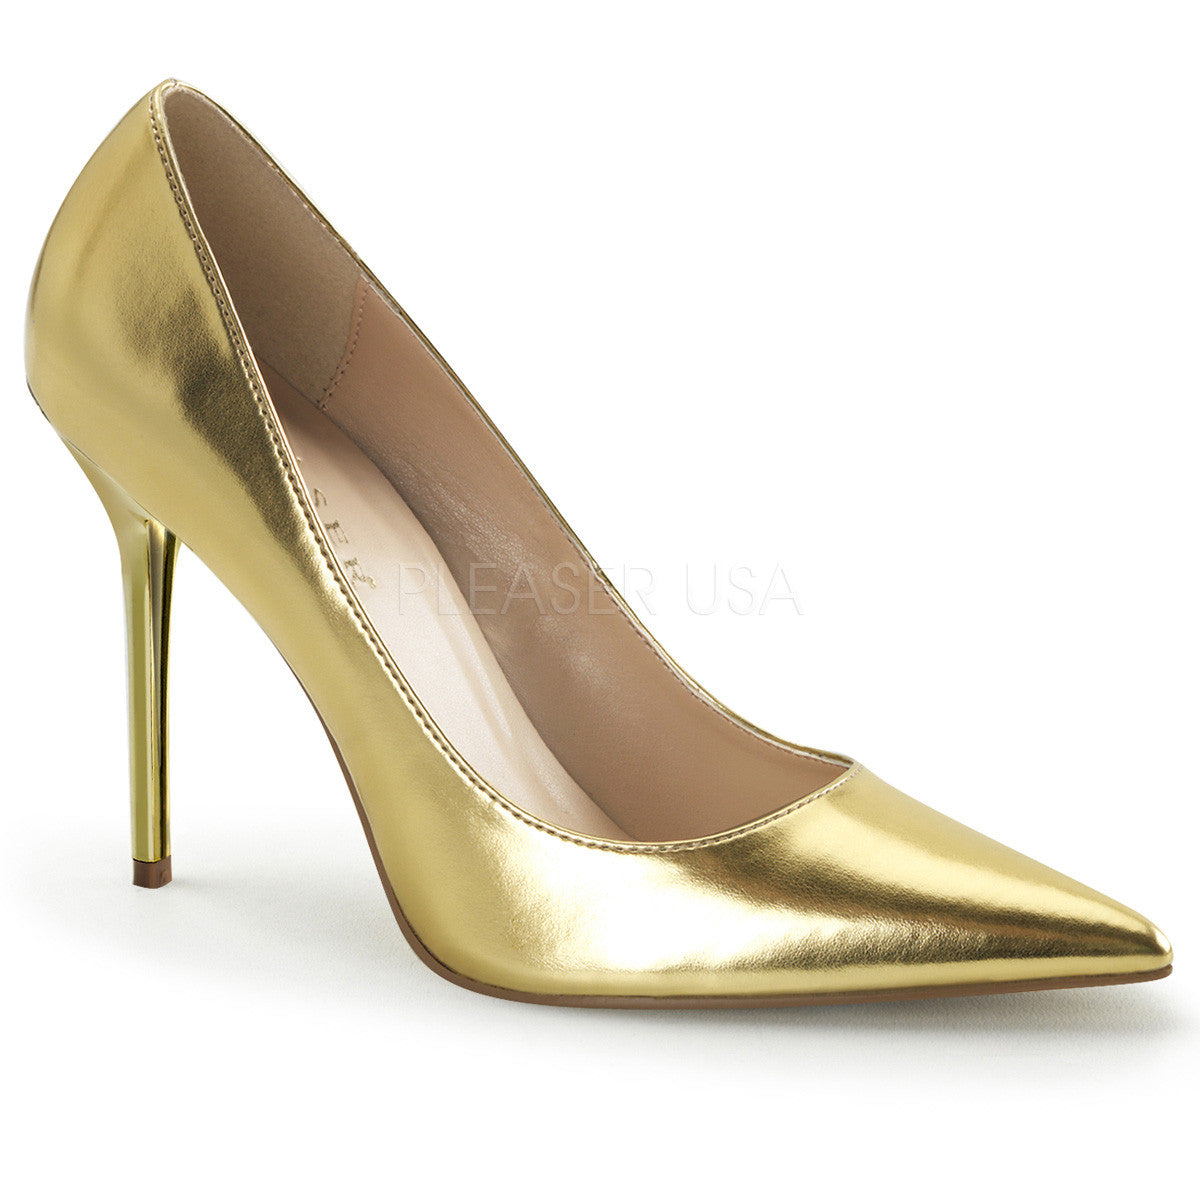 PLEASER CLASSIQUE-20 Gold Met Pu Pumps - Shoecup.com